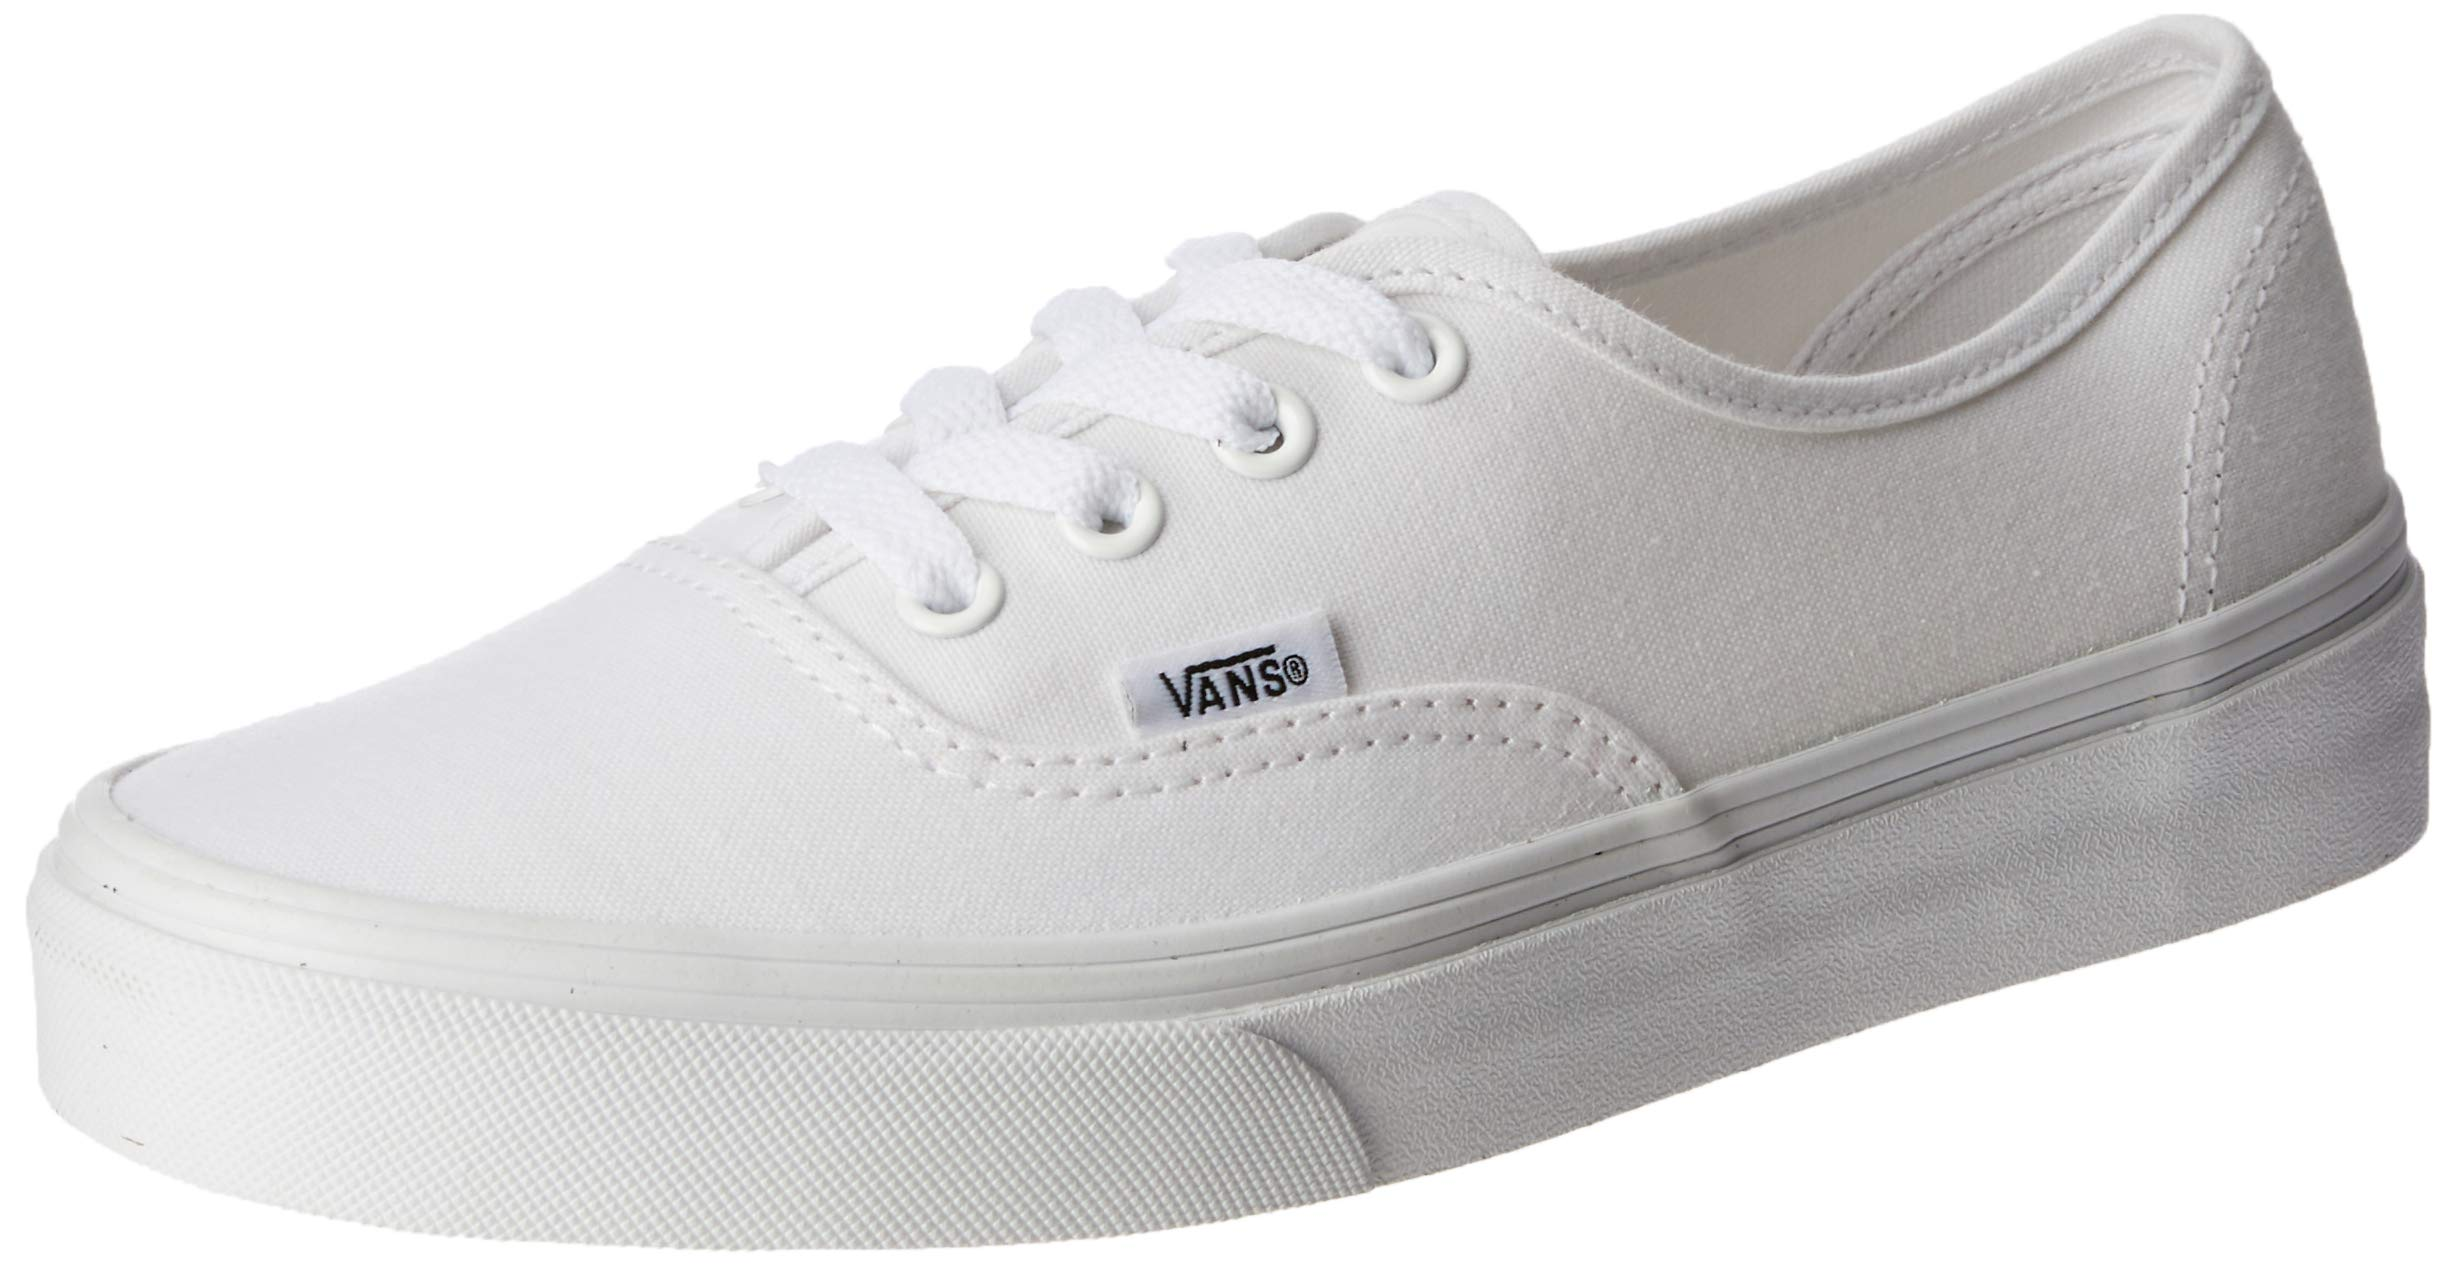 Vans Footwear Classics Men's Authentic Sneaker 10.5 White by Vans